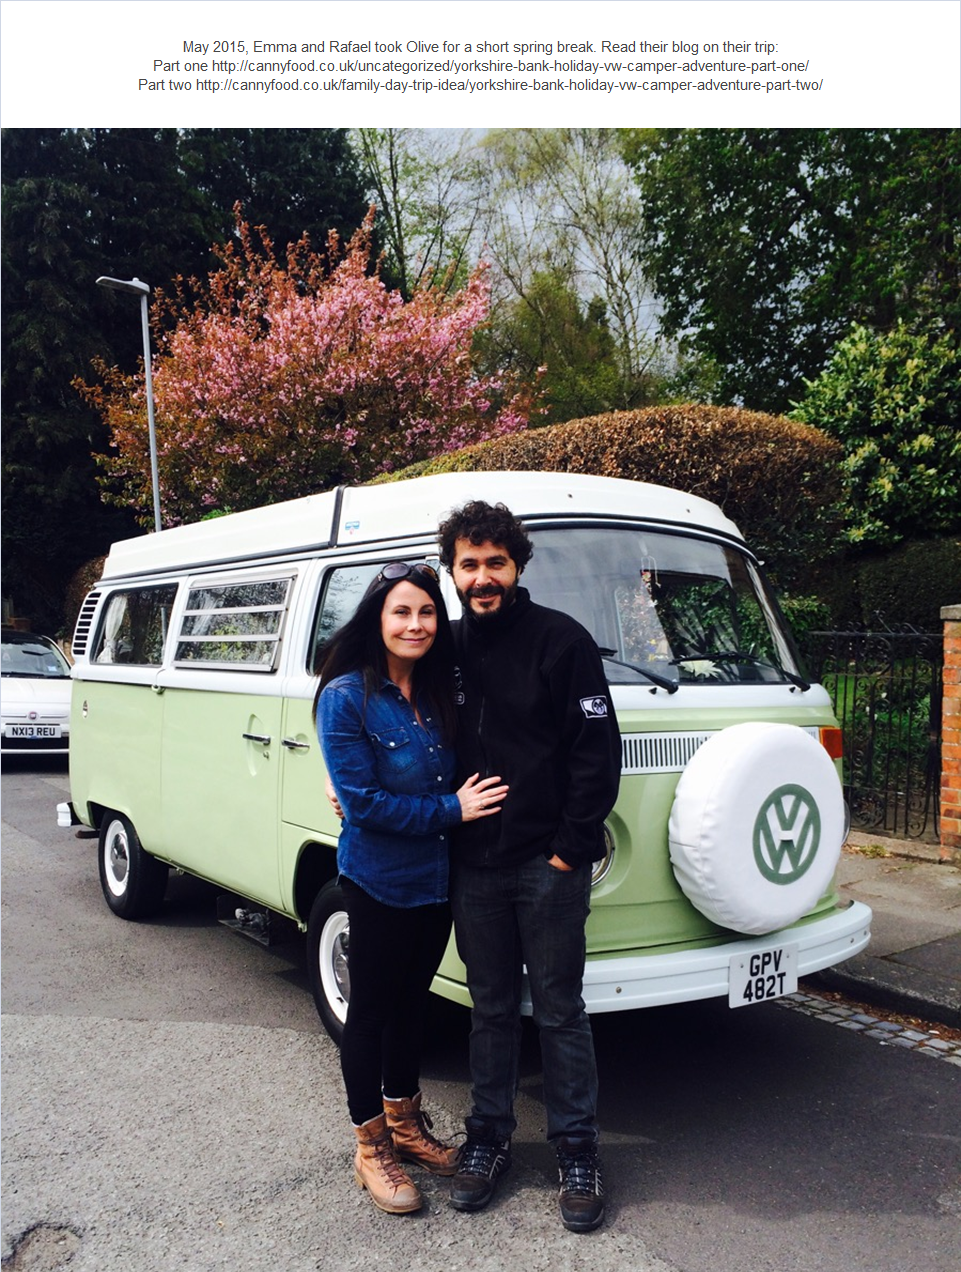 May 2015, Emma and Rafael took Olive for a short spring break. Read their blog on their trip:                                                                                          Part one http://cannyfood.co.uk/uncategorized/yorkshire-bank-holiday-vw-camper-adventure-part-one/                                                                       Part two http://cannyfood.co.uk/family-day-trip-idea/yorkshire-bank-holiday-vw-camper-adventure-part-two/